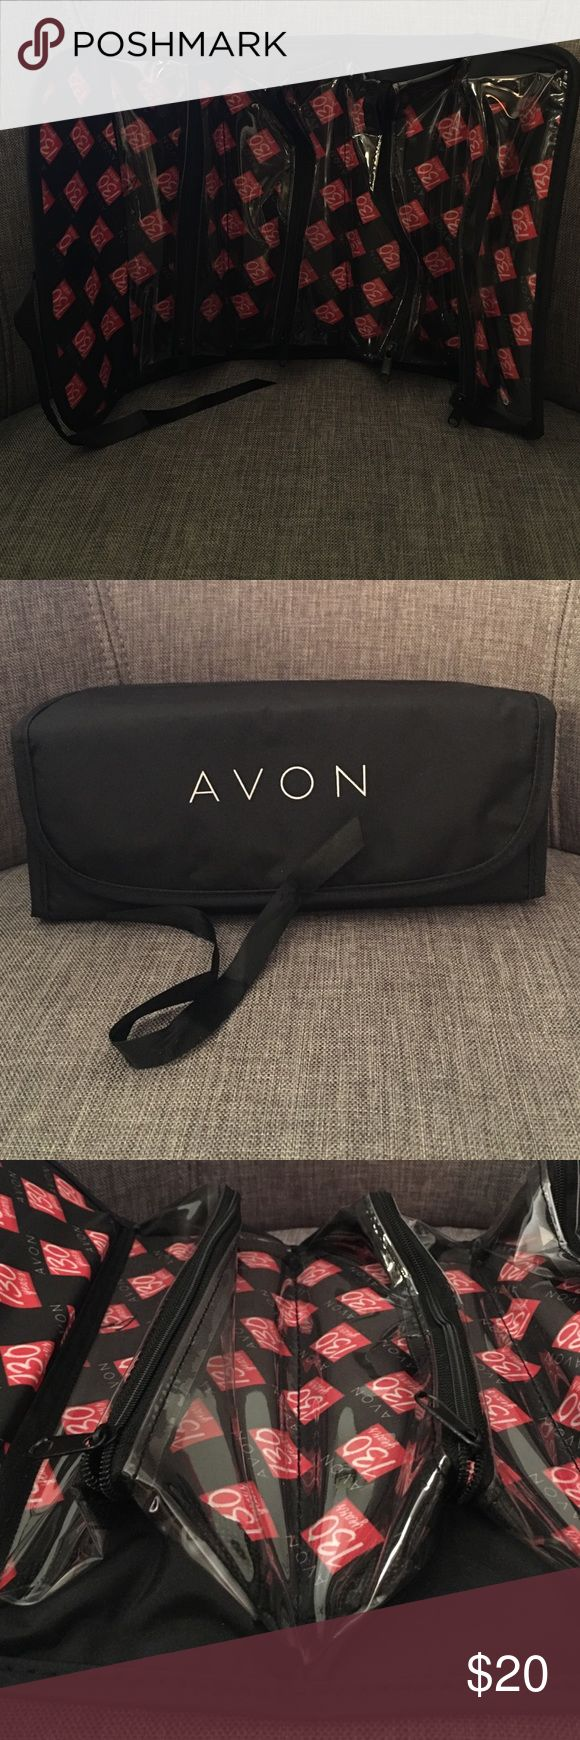 🌷AVON makeup or jewelry case 🌷AVON makeup or jewelry case. Never used. Great for travel. Bag has 4 clear zippered compartments and conveniently rolls up into a easy packing rectangular shape. Bag measures 9x3 rolled up Avon Bags Cosmetic Bags & Cases